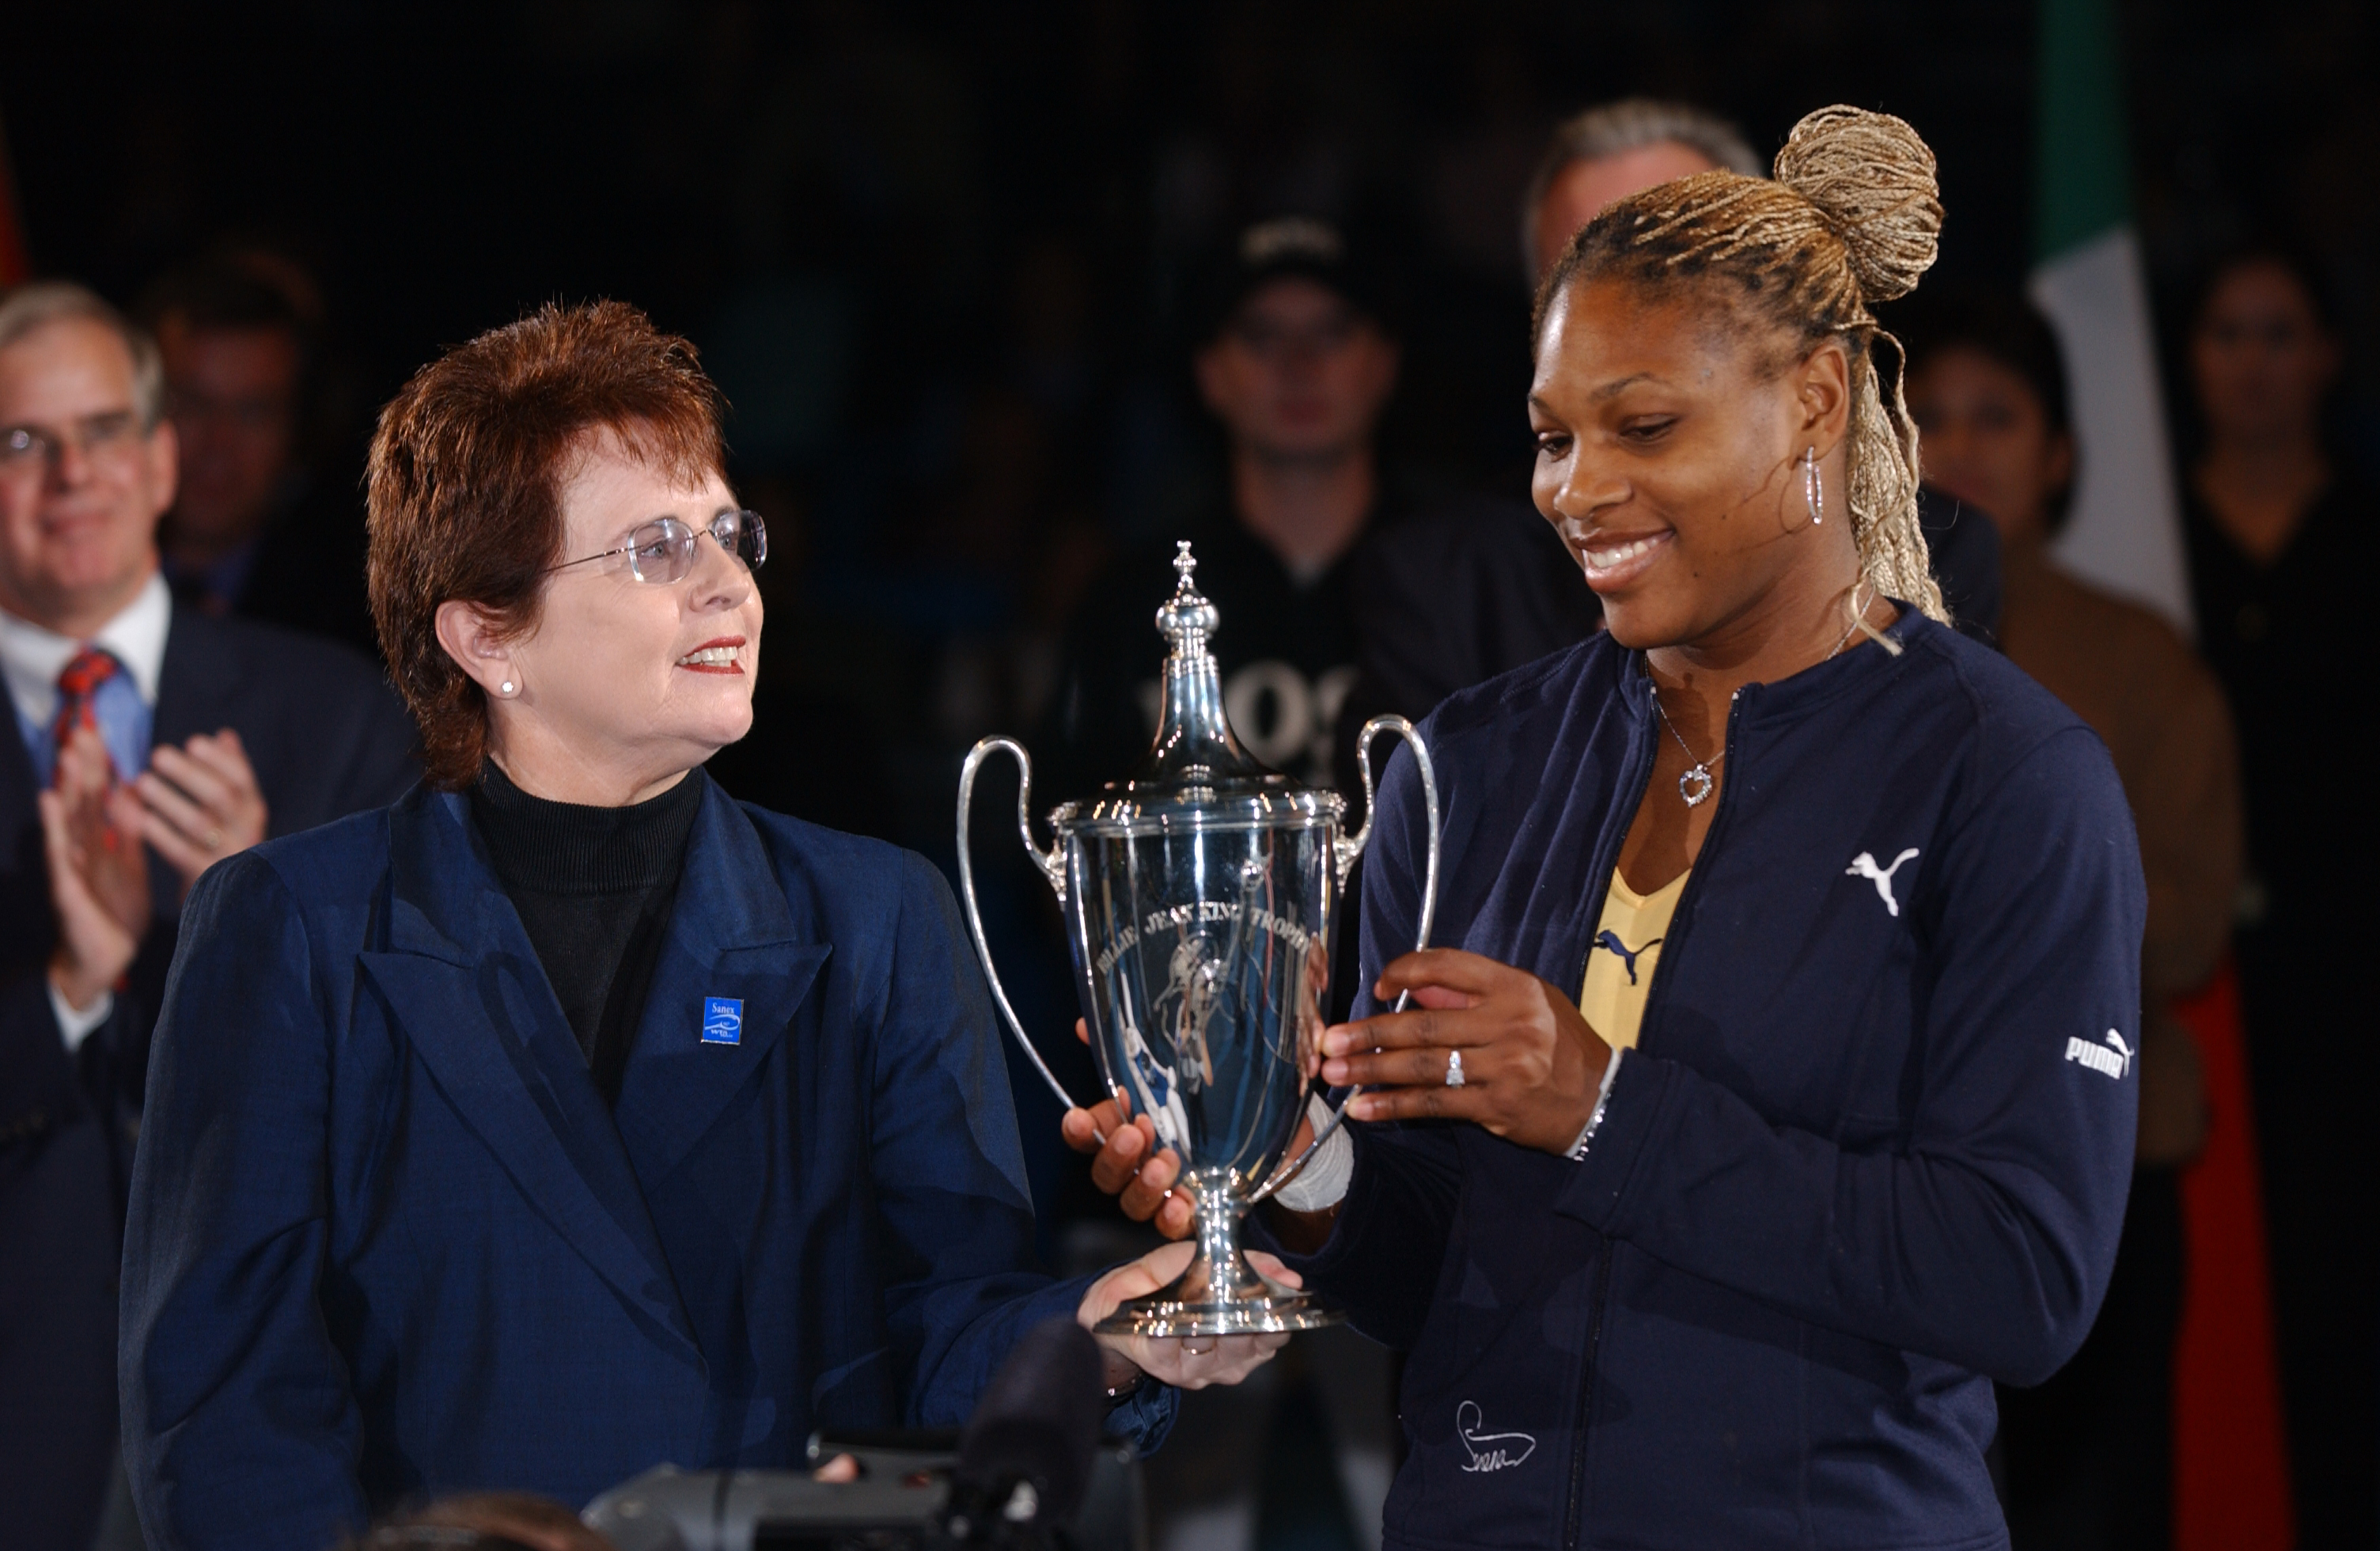 Serena Williams, making her tournament debut, wins the title after Lindsay Davenport withdraws before the final with a knee injury.